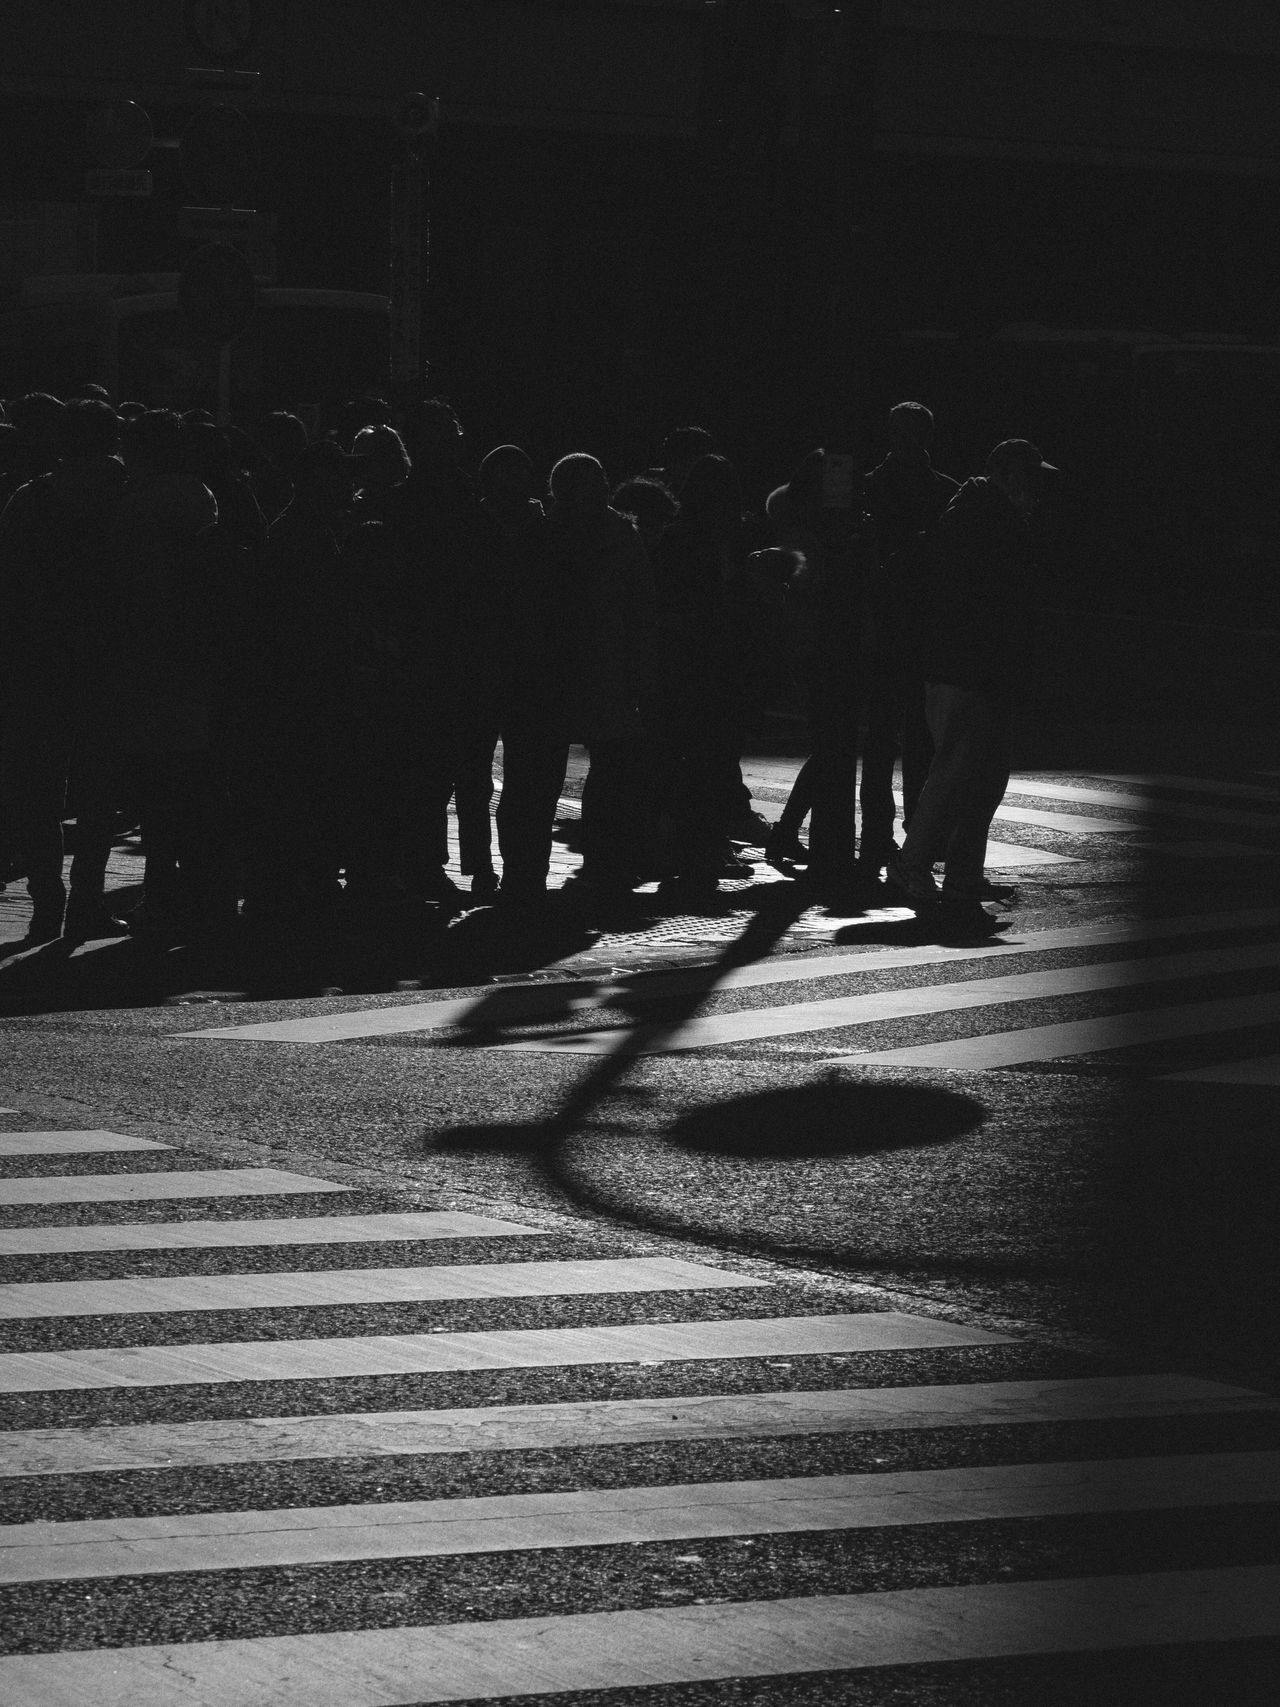 Reflection White And Black Monochrome Streetphotography Crossroads Waiting EEyeEm Best ShotsJJapanTTokyo Stop And Go City Life Social Issues Standing Line Rules Traffic